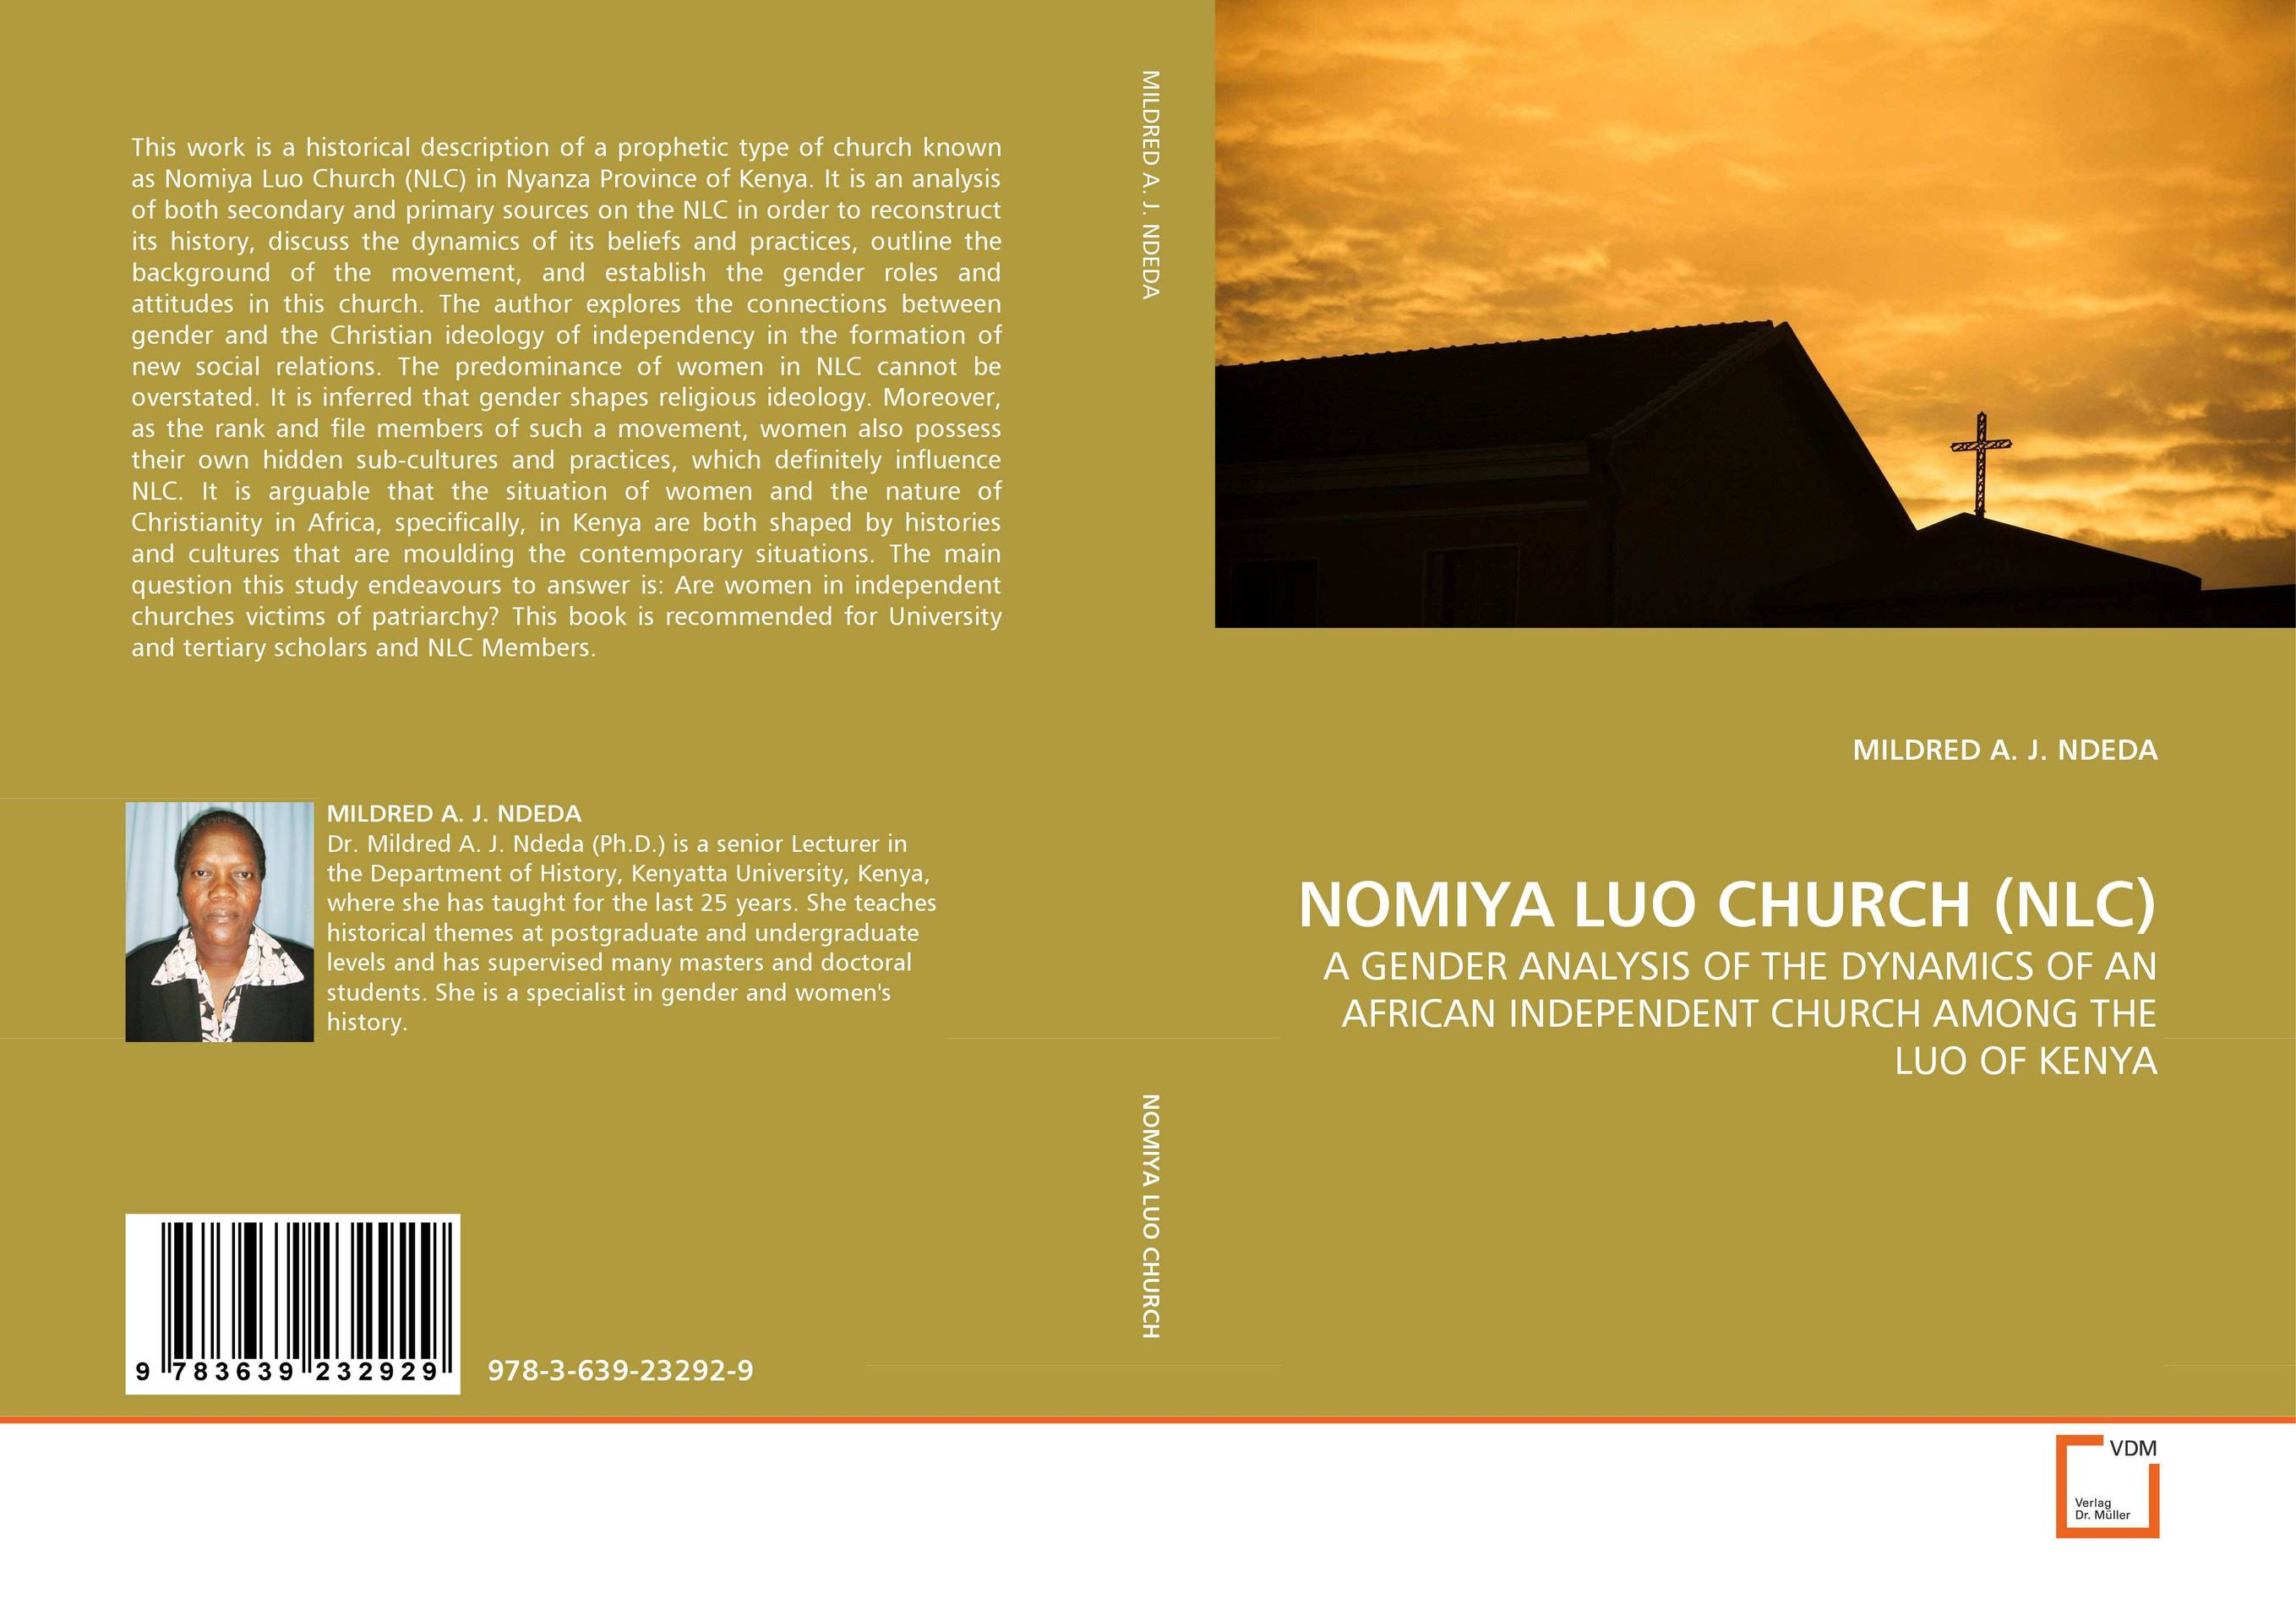 NOMIYA LUO CHURCH (NLC) nation gender and cultures of violence